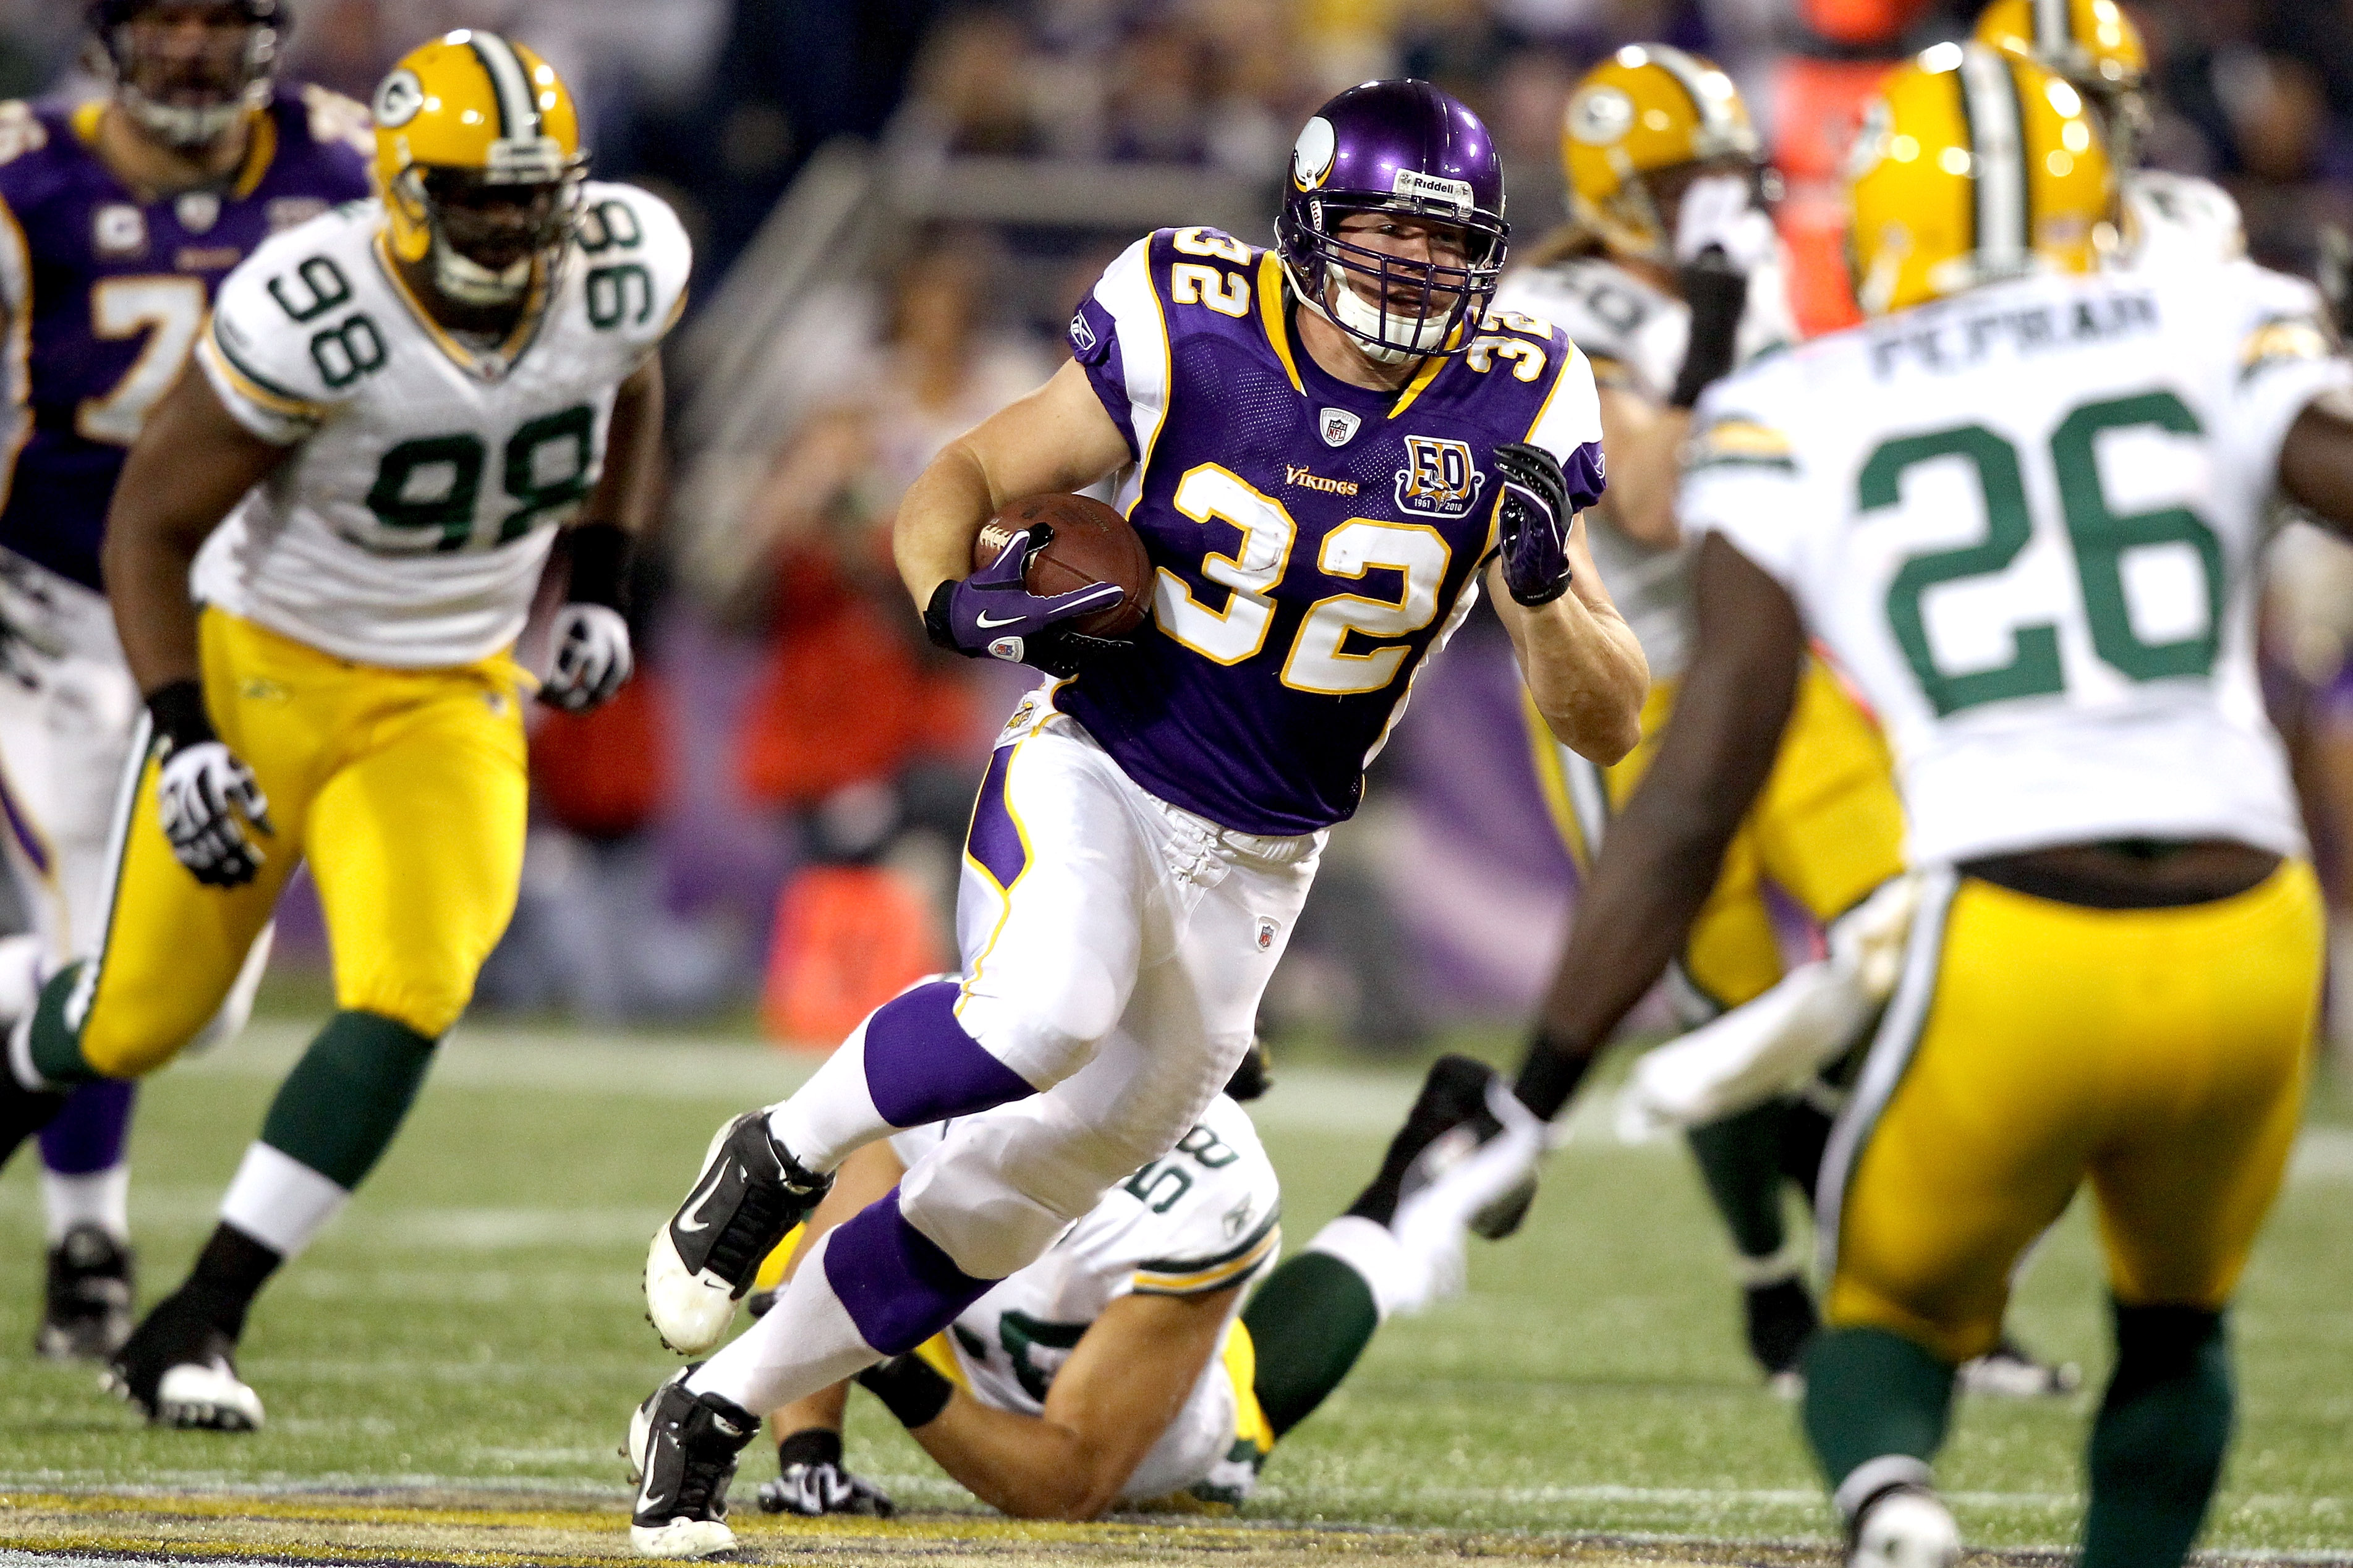 MINNEAPOLIS - NOVEMBER 21: Toby Gerhart #32 of the Minnesota Vikings carries the ball against the Green Bay Packers at the Hubert H. Humphrey Metrodome on November 21, 2010 in Minneapolis, Minnesota.  (Photo by Matthew Stockman/Getty Images)